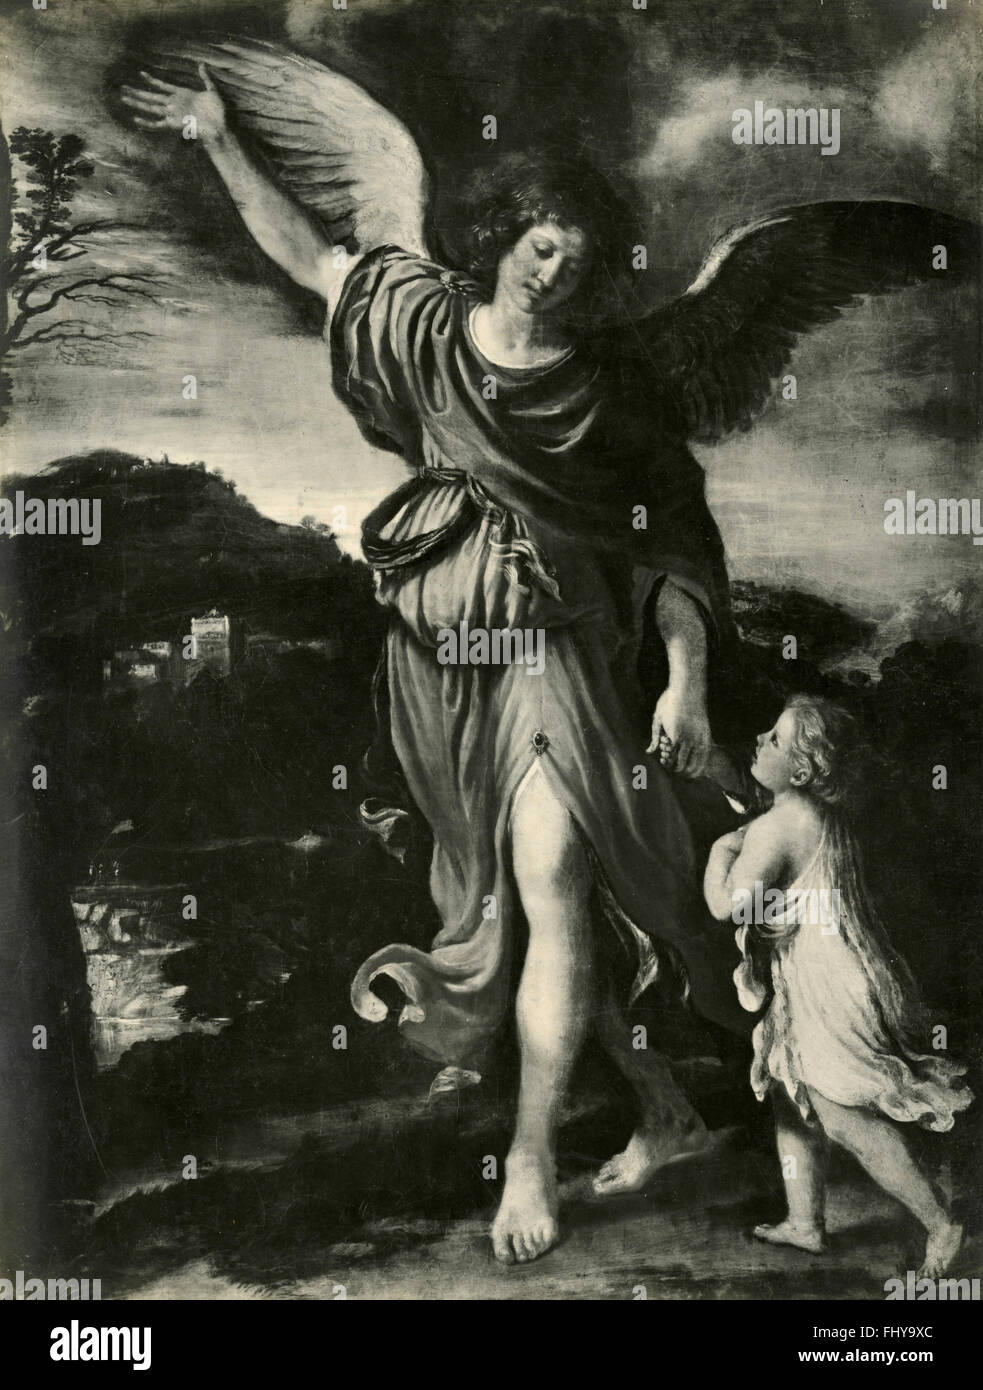 Archangel and Tobias, painting by Guercino - Stock Image